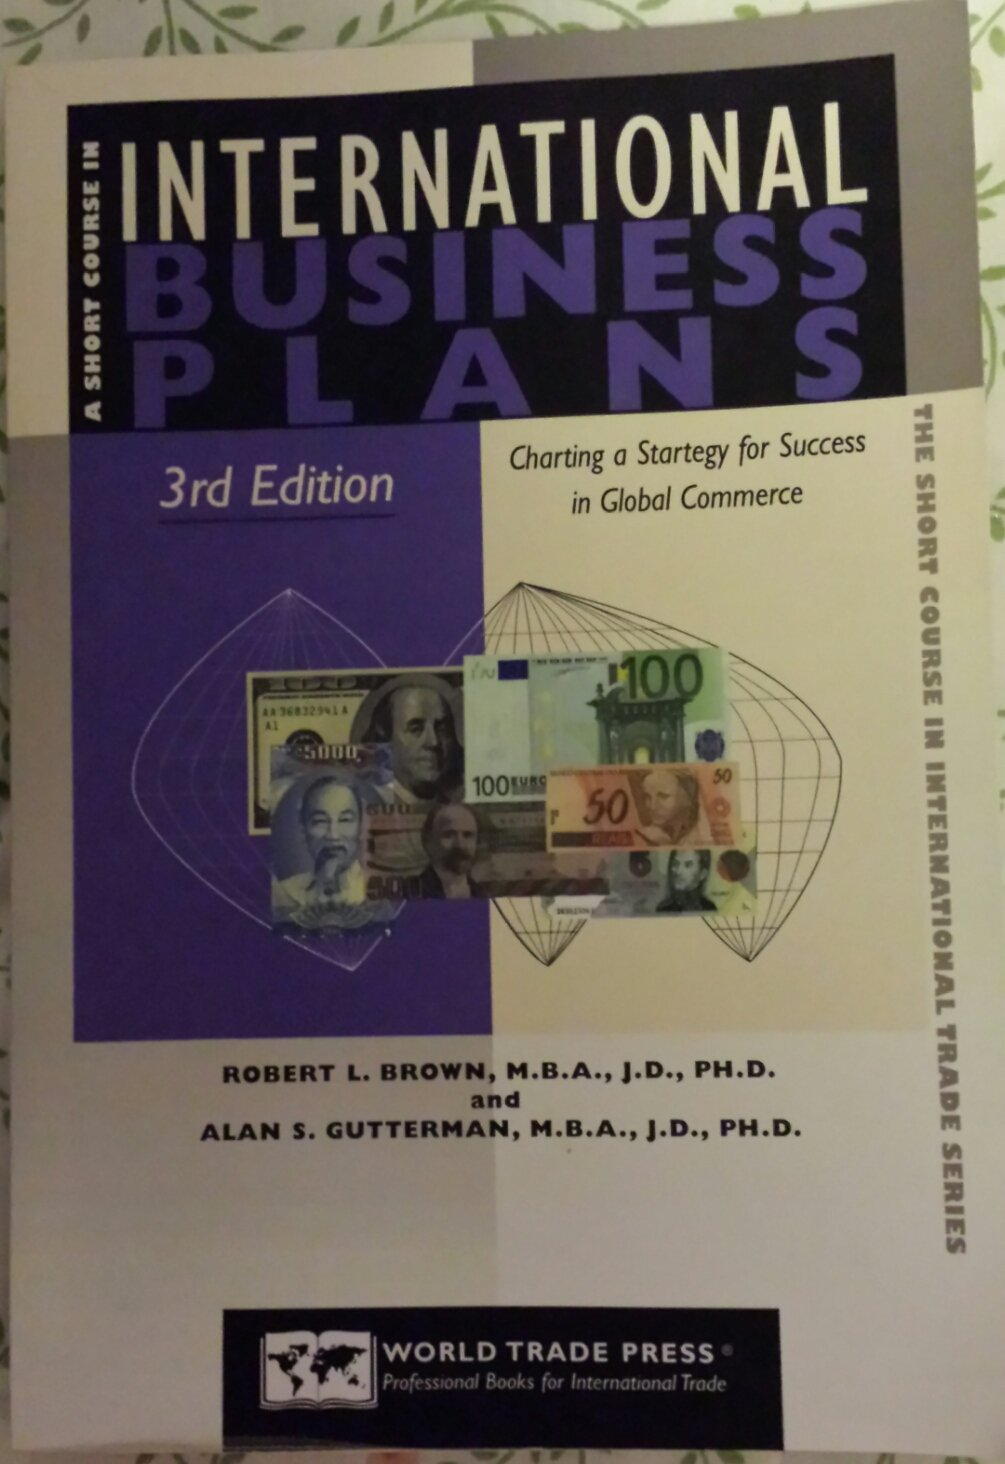 A Short Course In International Business Plans Charting Strategy For Success Global Commerce The Trade Series